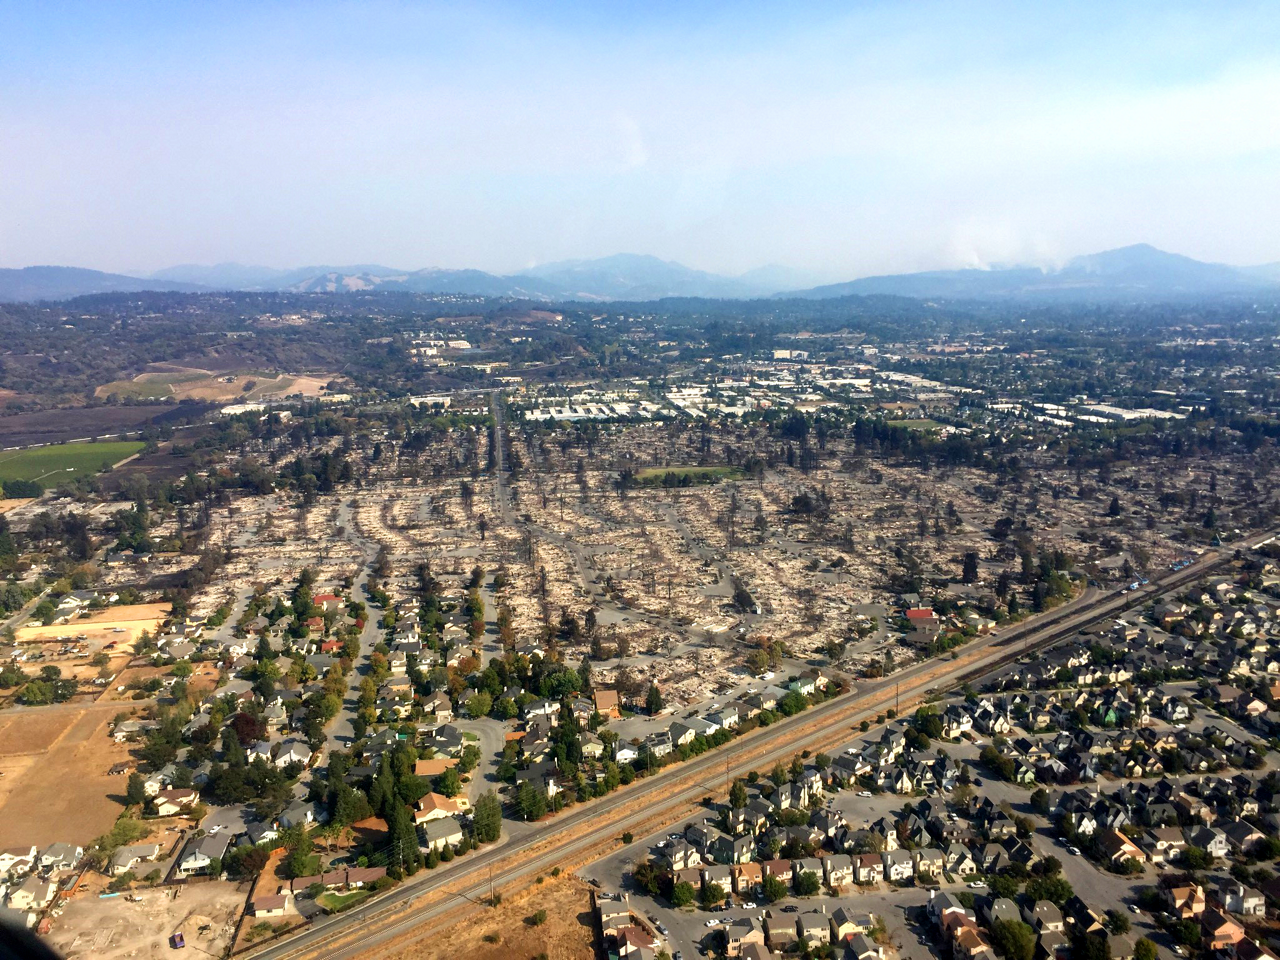 A large section of the city of Santa Rosa in Sonoma County, California, was burned, including the Coffey Park neighborhood.